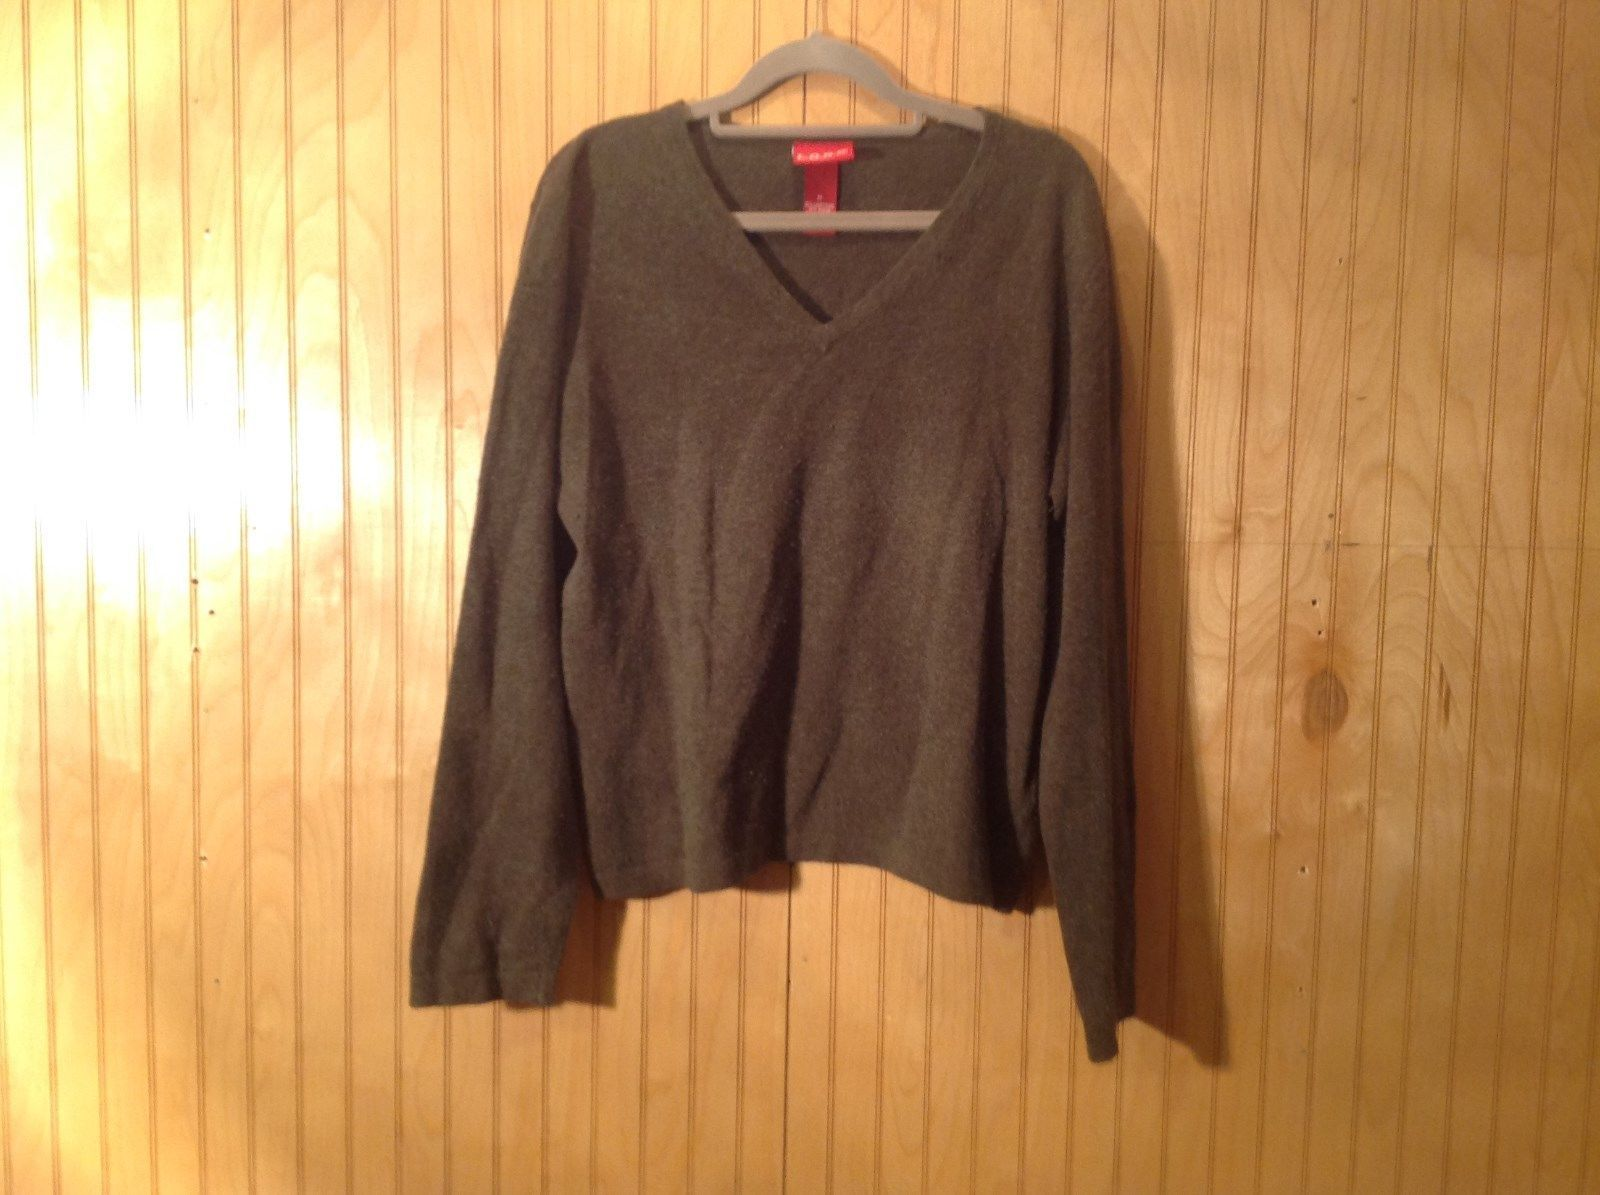 LOGG Heather Gray V Neck Long Sleeve Sweater Very Soft Size Medium